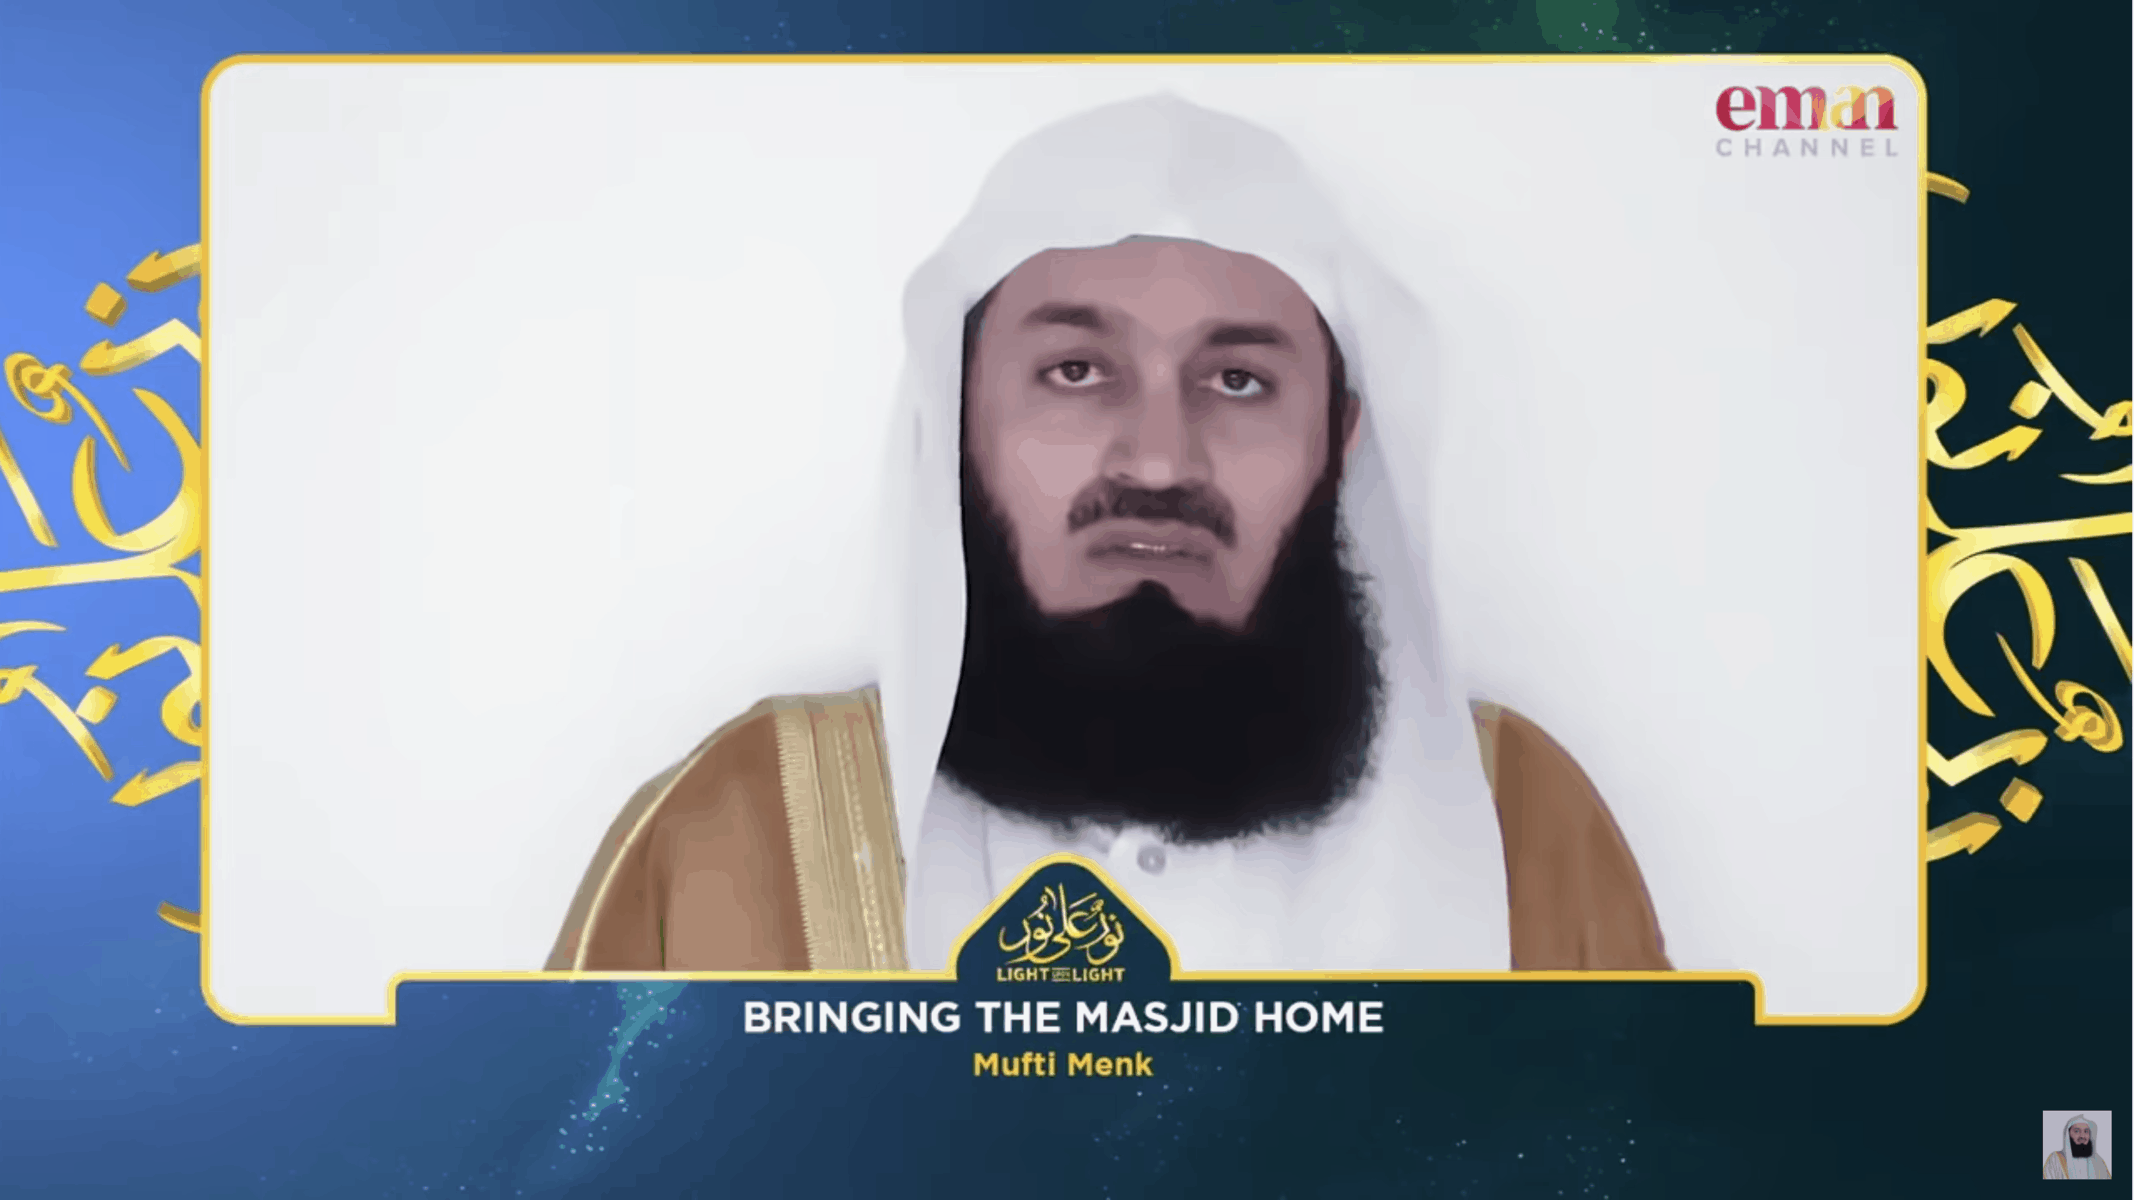 Ismail ibn Musa Menk – Bringing the Masjid Home